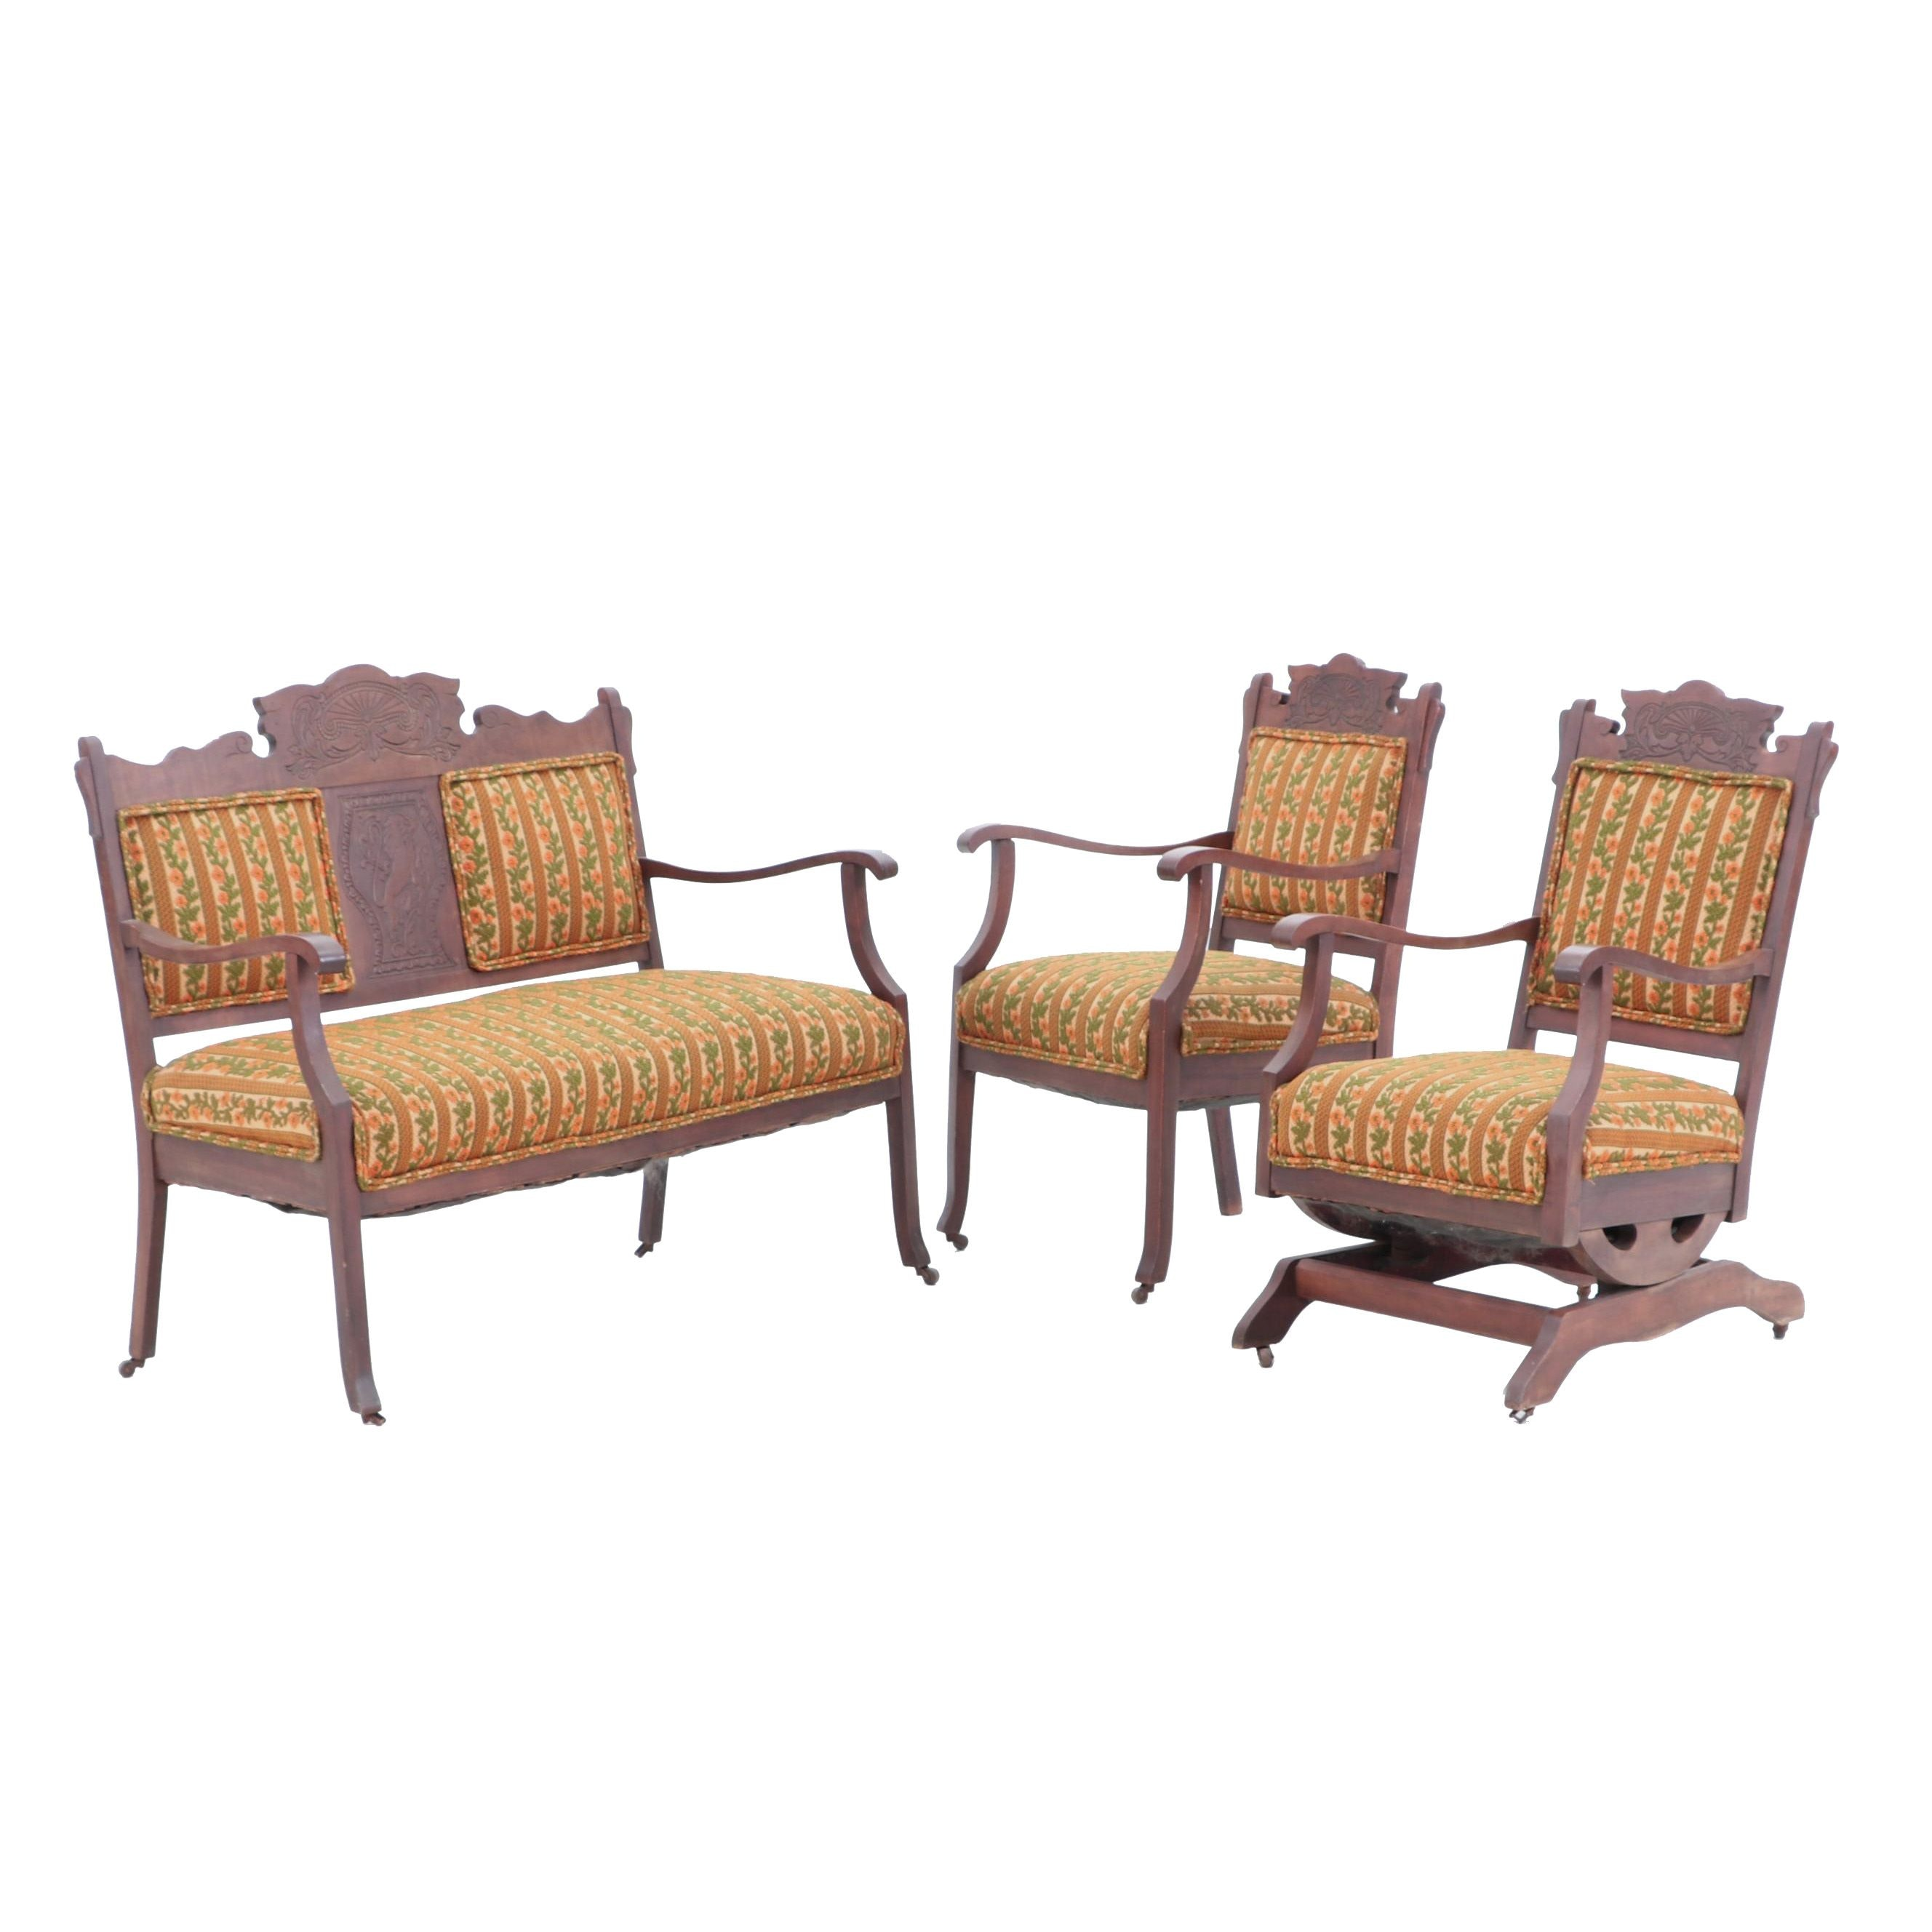 Late Victorian Parlor Seating